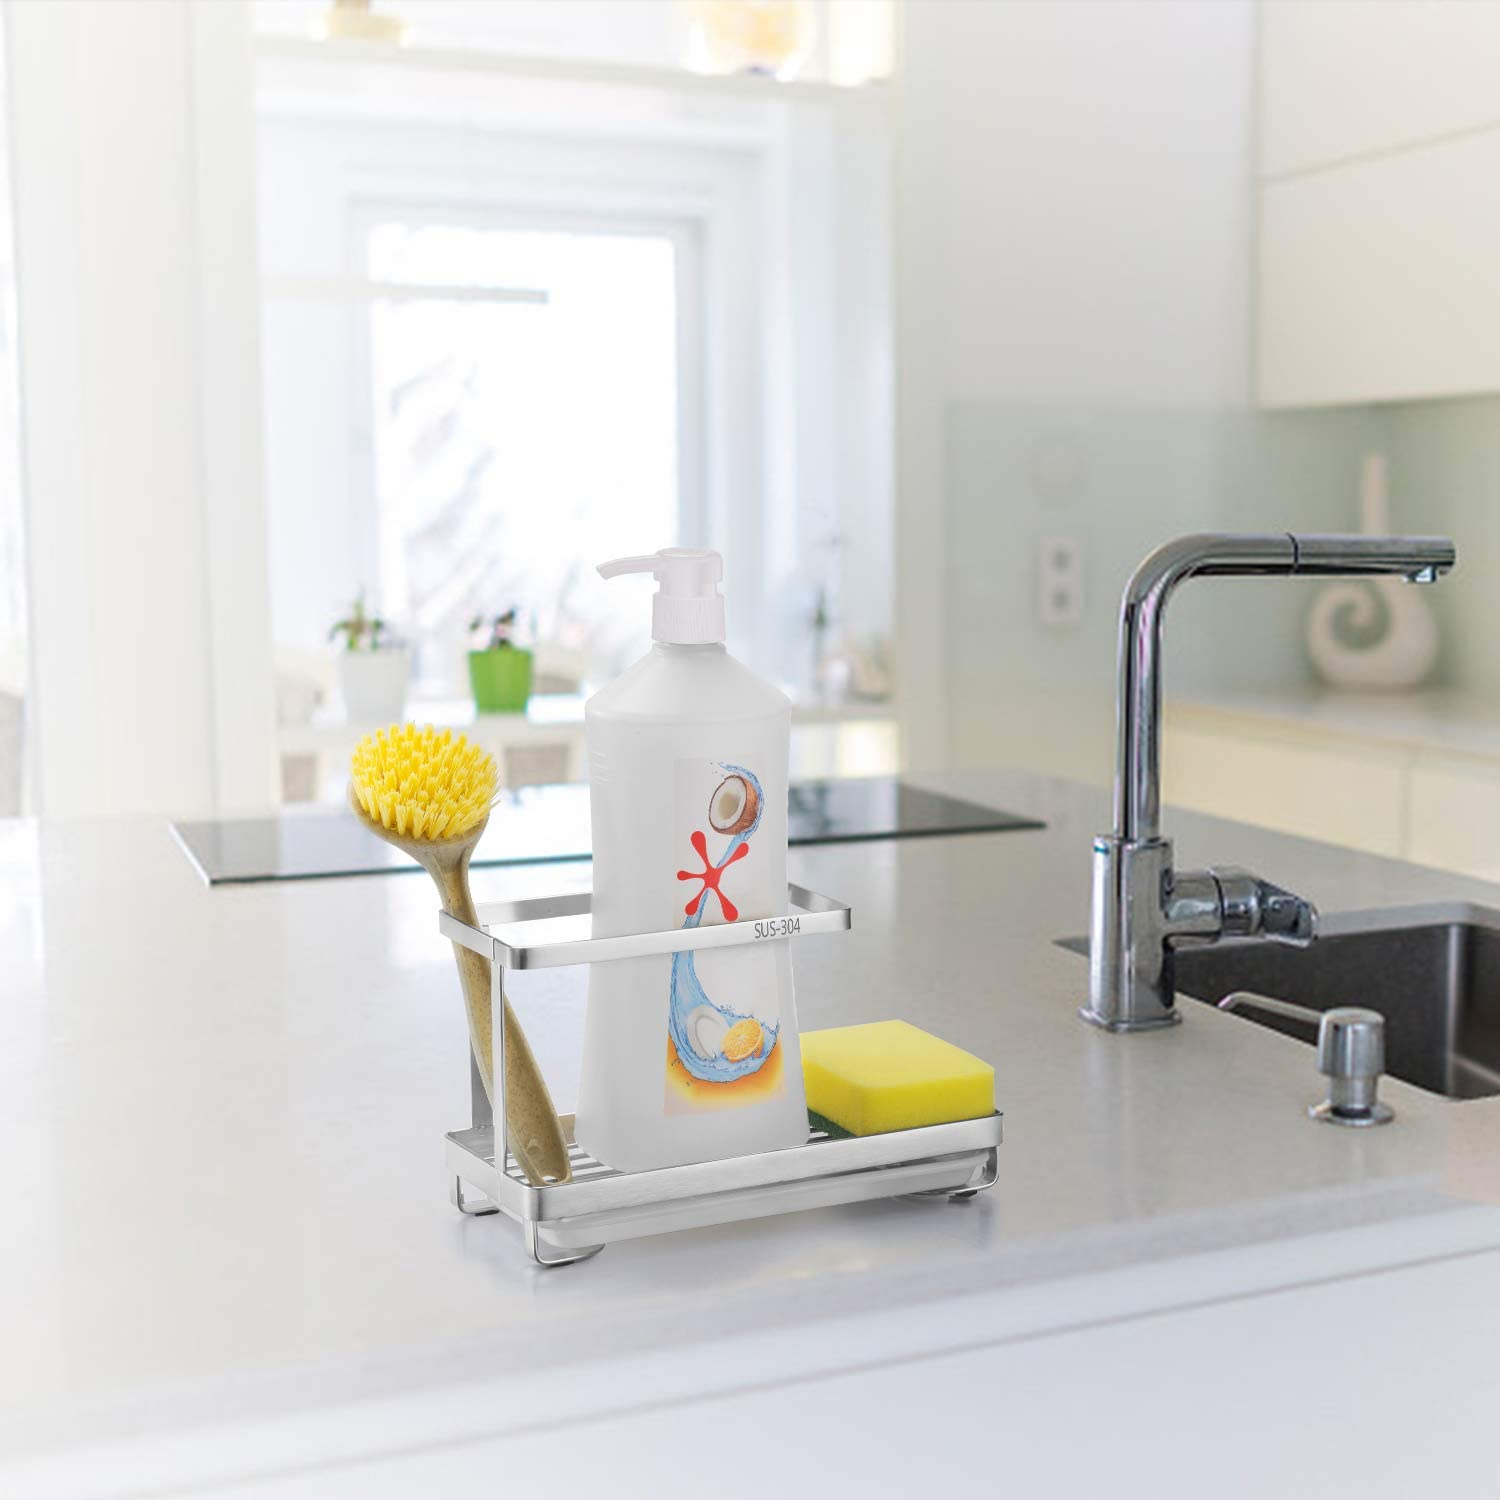 Black Oyydecor Kitchen Sink Caddy Organizer with Drain Pan Sponge Soap Brush Holder SUS304 Stainless Steel